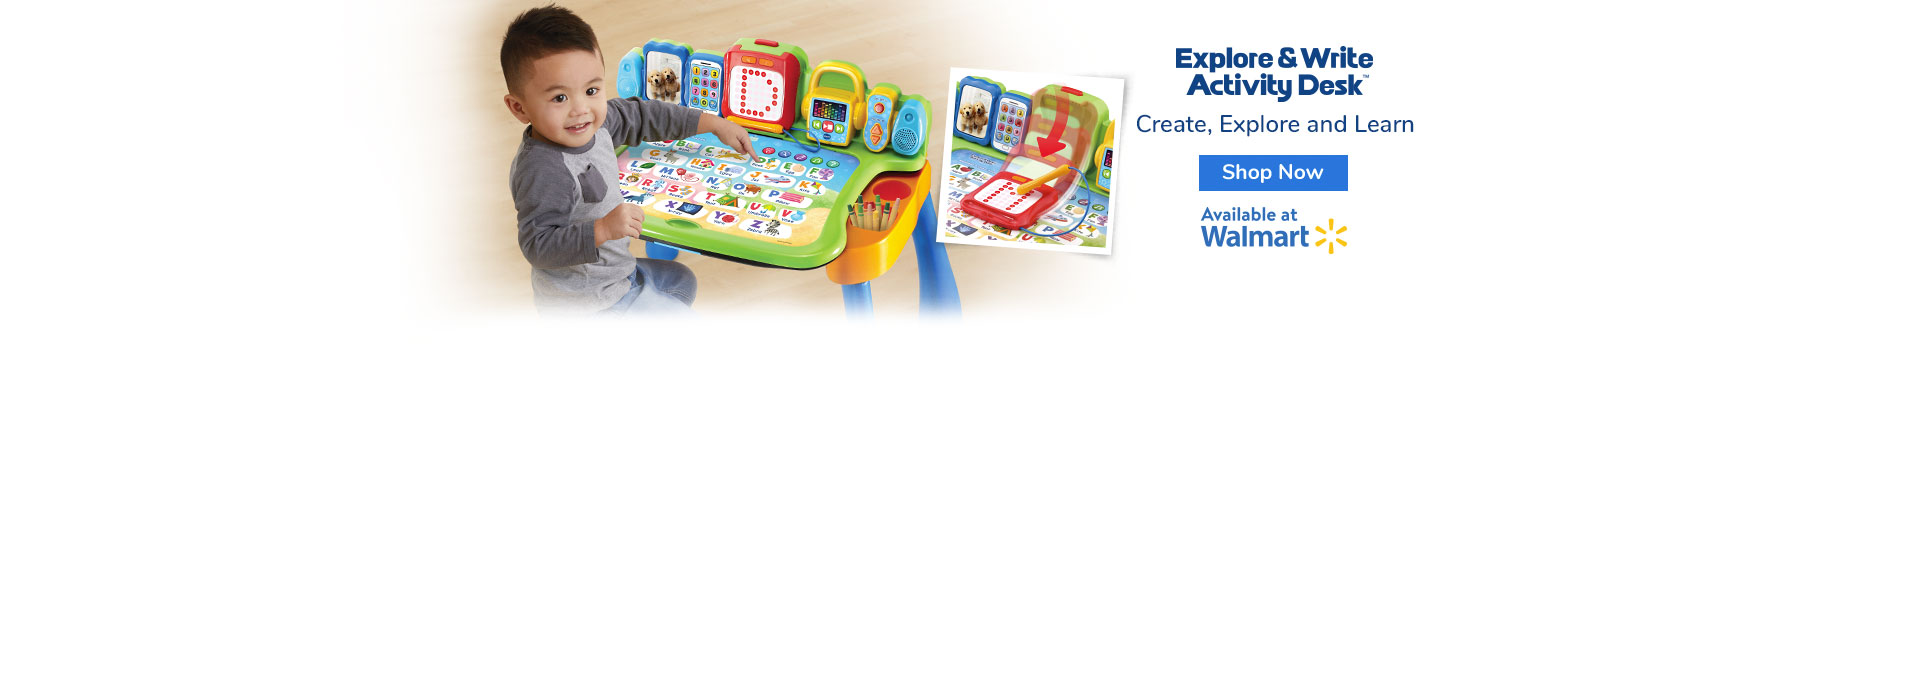 Explore and Write Desk at Walmart